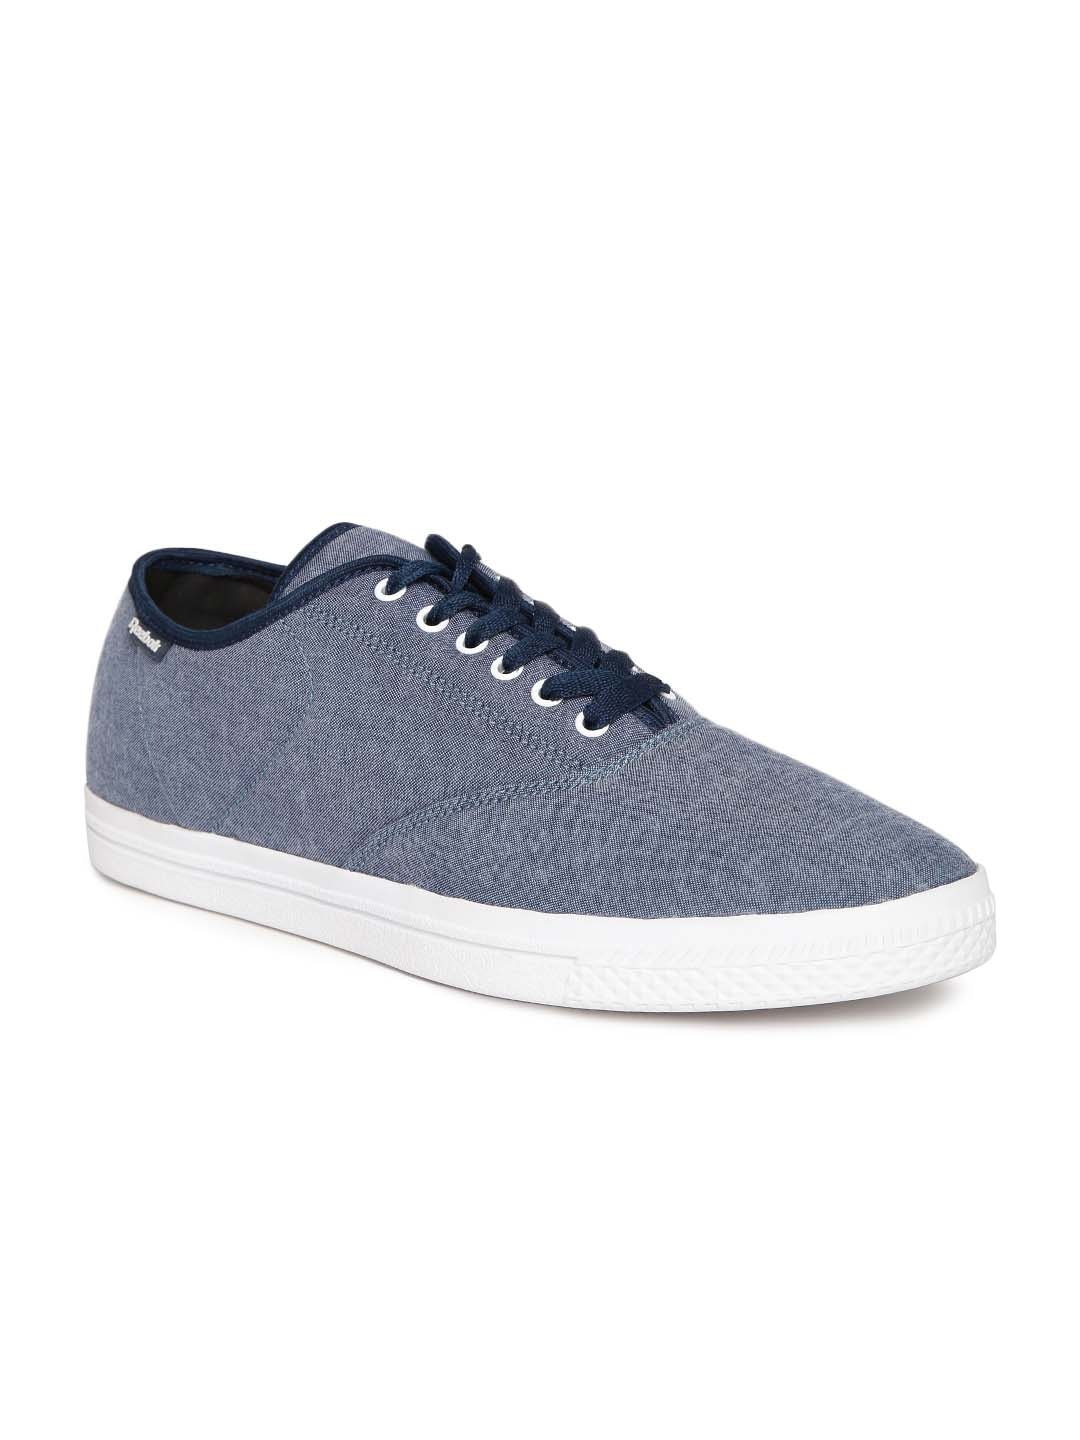 421773c7973bd5 Reebok bd3453 Classic Men Navy Blue Tenstall Canvas Shoes- Price in India